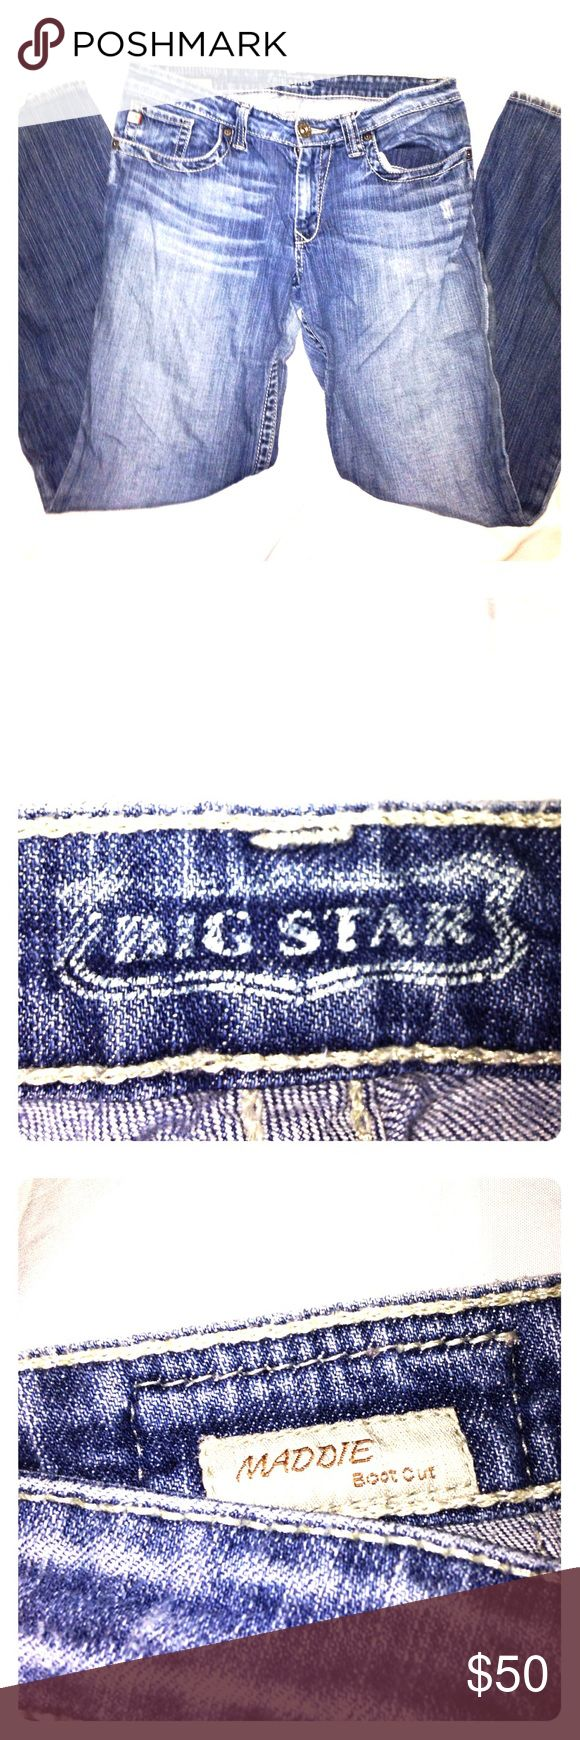 """BIG STAR MADDIE BOOT CUT JEANS BIG STAR MADDIE BOOTCUT JEANS. THESE WERE ORIGINALLY BOUGHT FOR $142 AT THE BUCKLE. These jeans are a """"BUCKLE EXCLUSIVE."""" The measurements are Waist: 16"""", Inseam 32"""", Rise 8"""". I can bundle these jeans with the other MADDIE FIT in my closet. If you have any questions please comment and I will respond ASAP. Also the tag on these jeans say '29 R'. Big Star Jeans Boot Cut"""